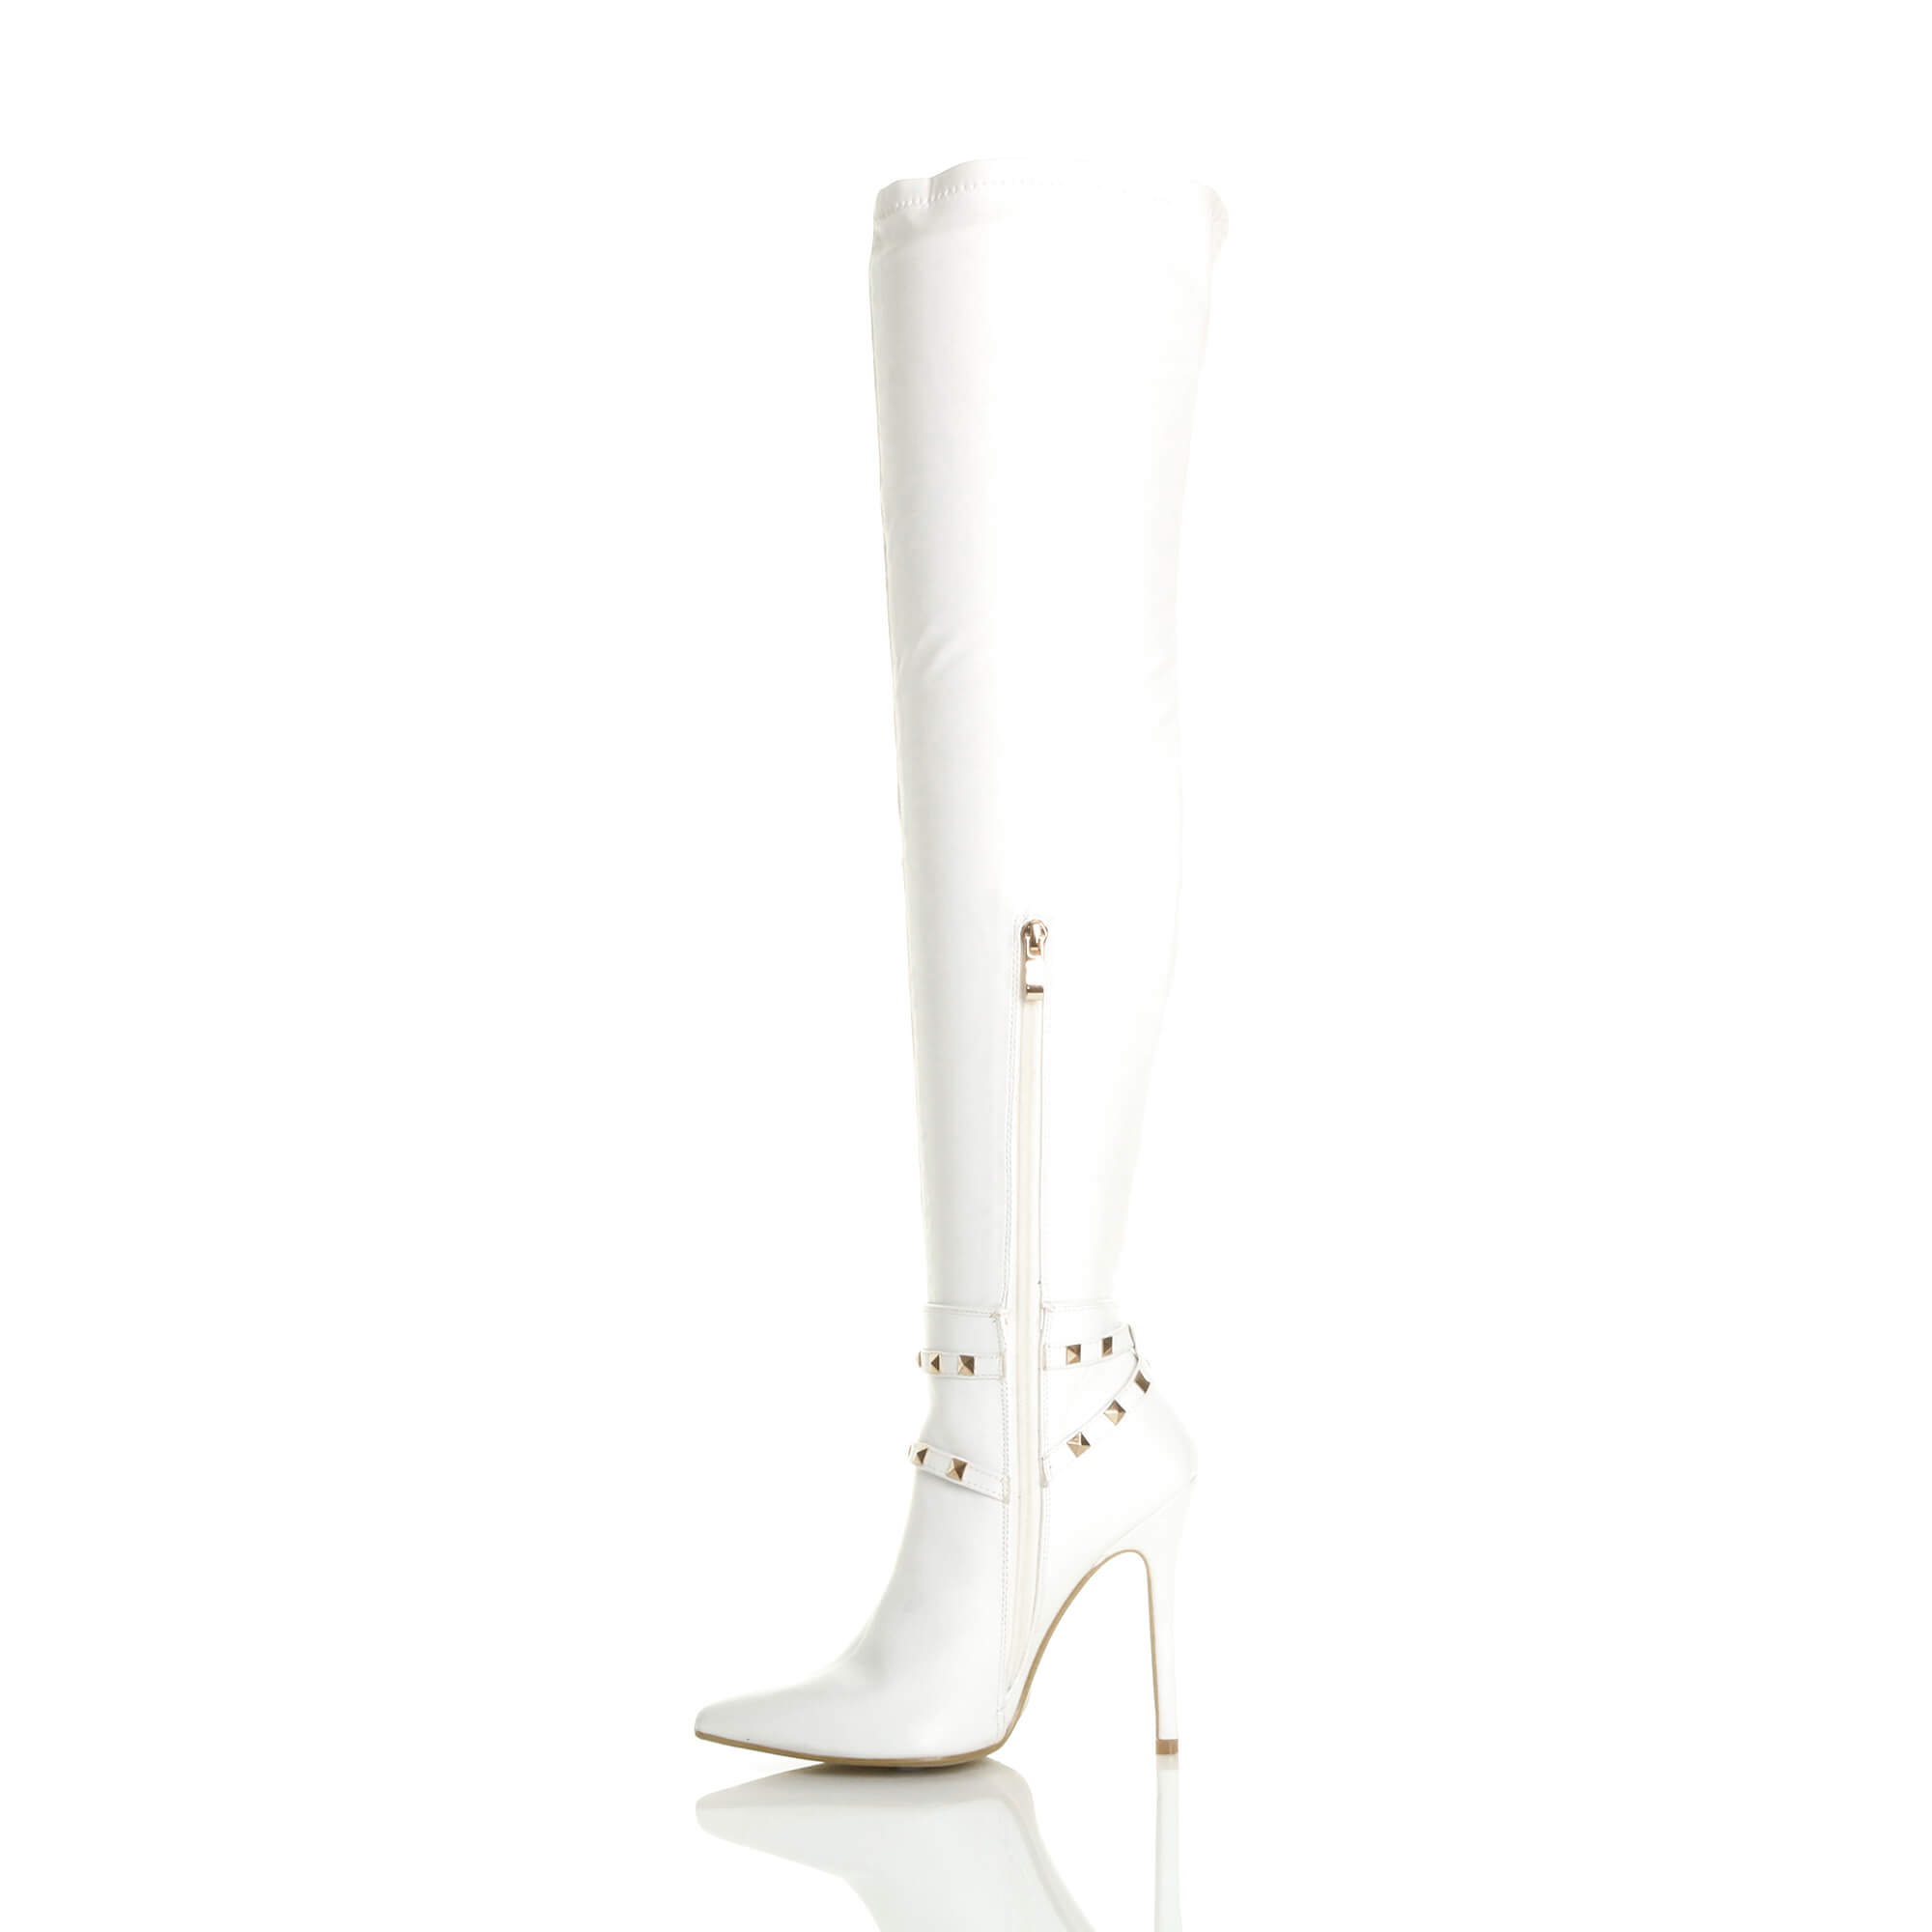 WOMENS-LADIES-HIGH-HEEL-STUDDED-STIRRUP-OVER-THE-KNEE-POINTED-THIGH-BOOTS-SIZE